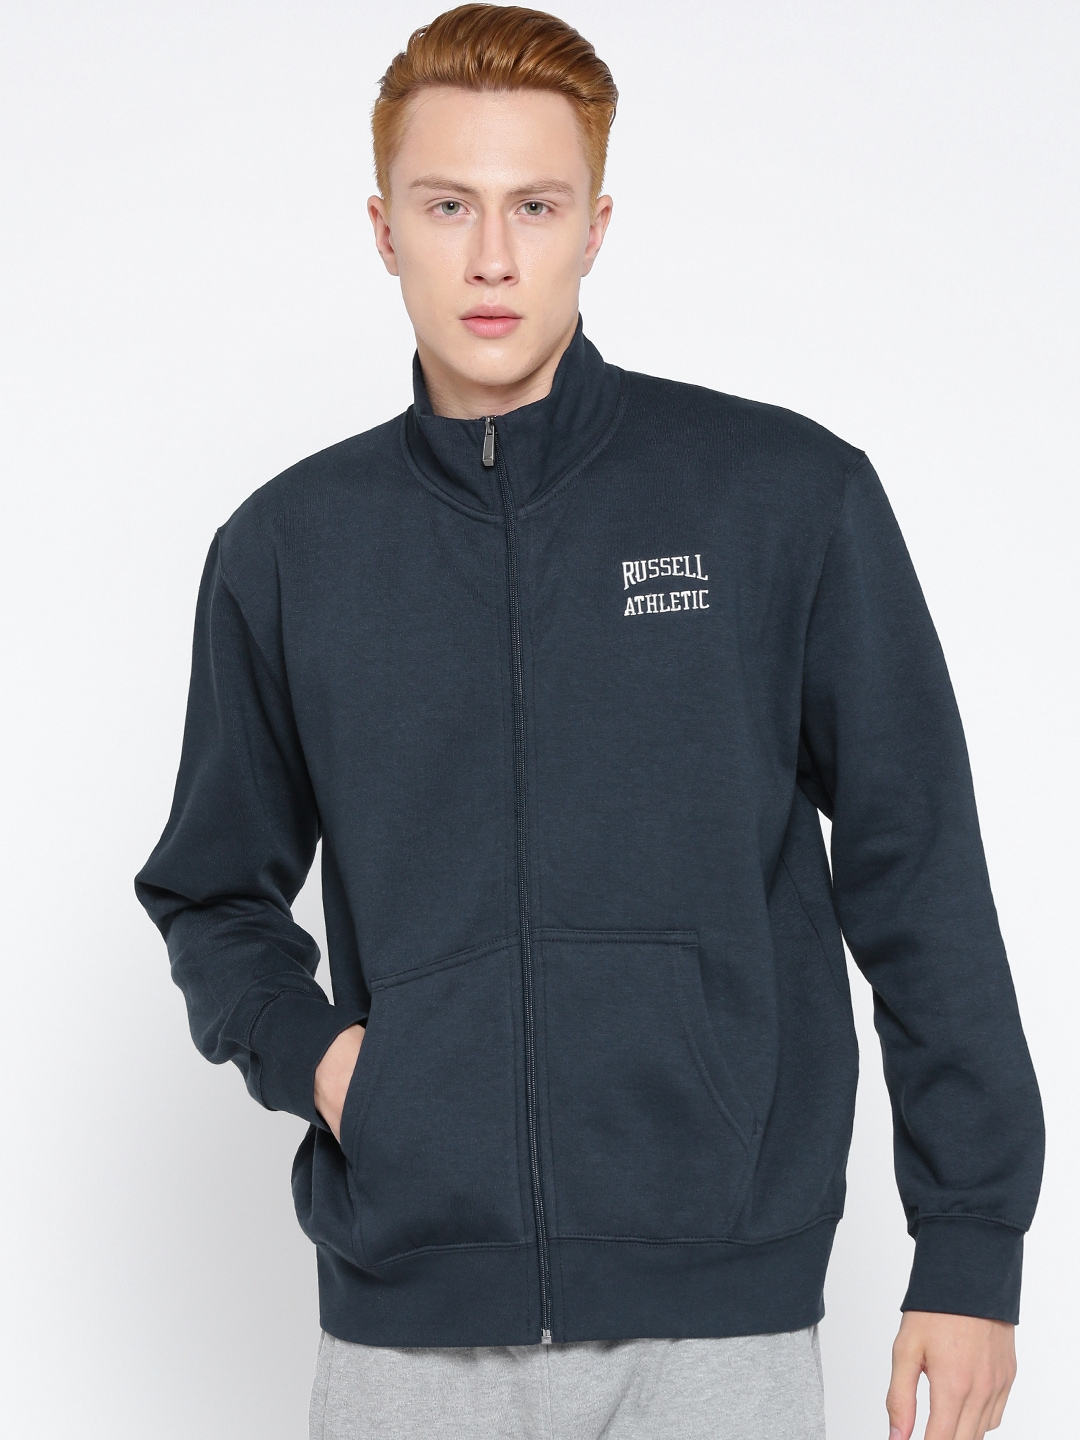 Russell Athletic Navy Sweatshirt image